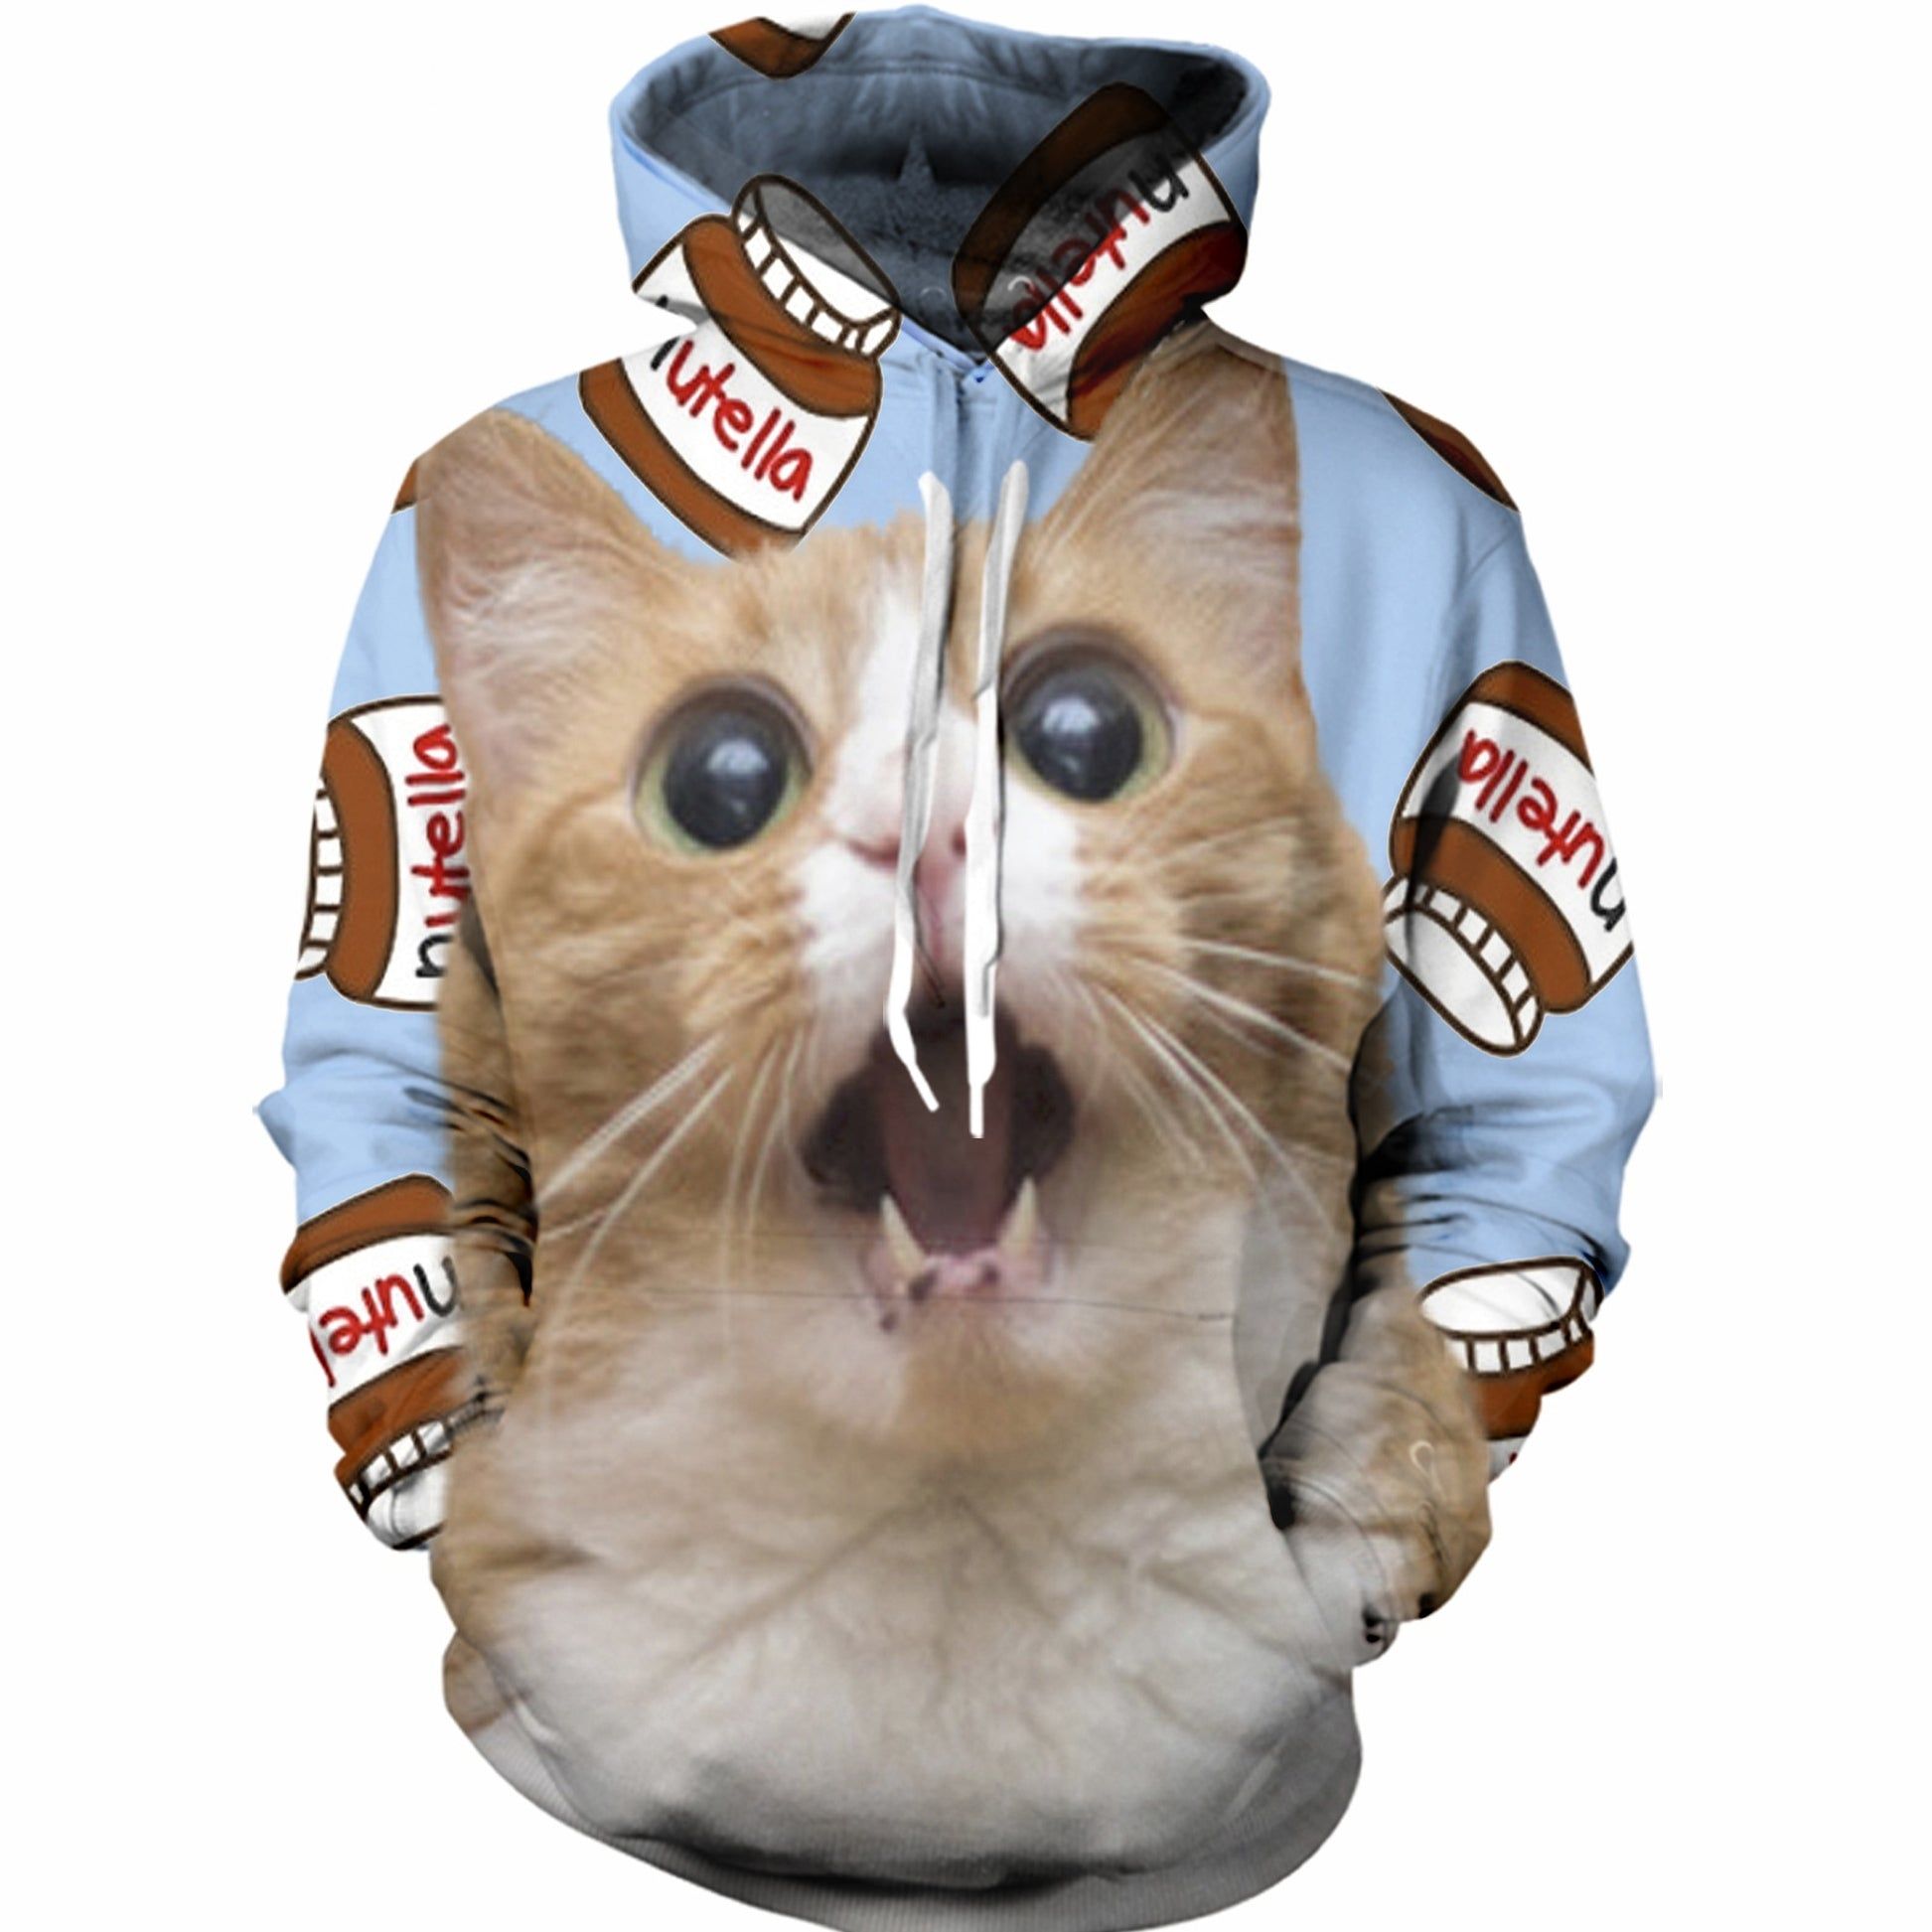 Nutella Excitement Hoodie